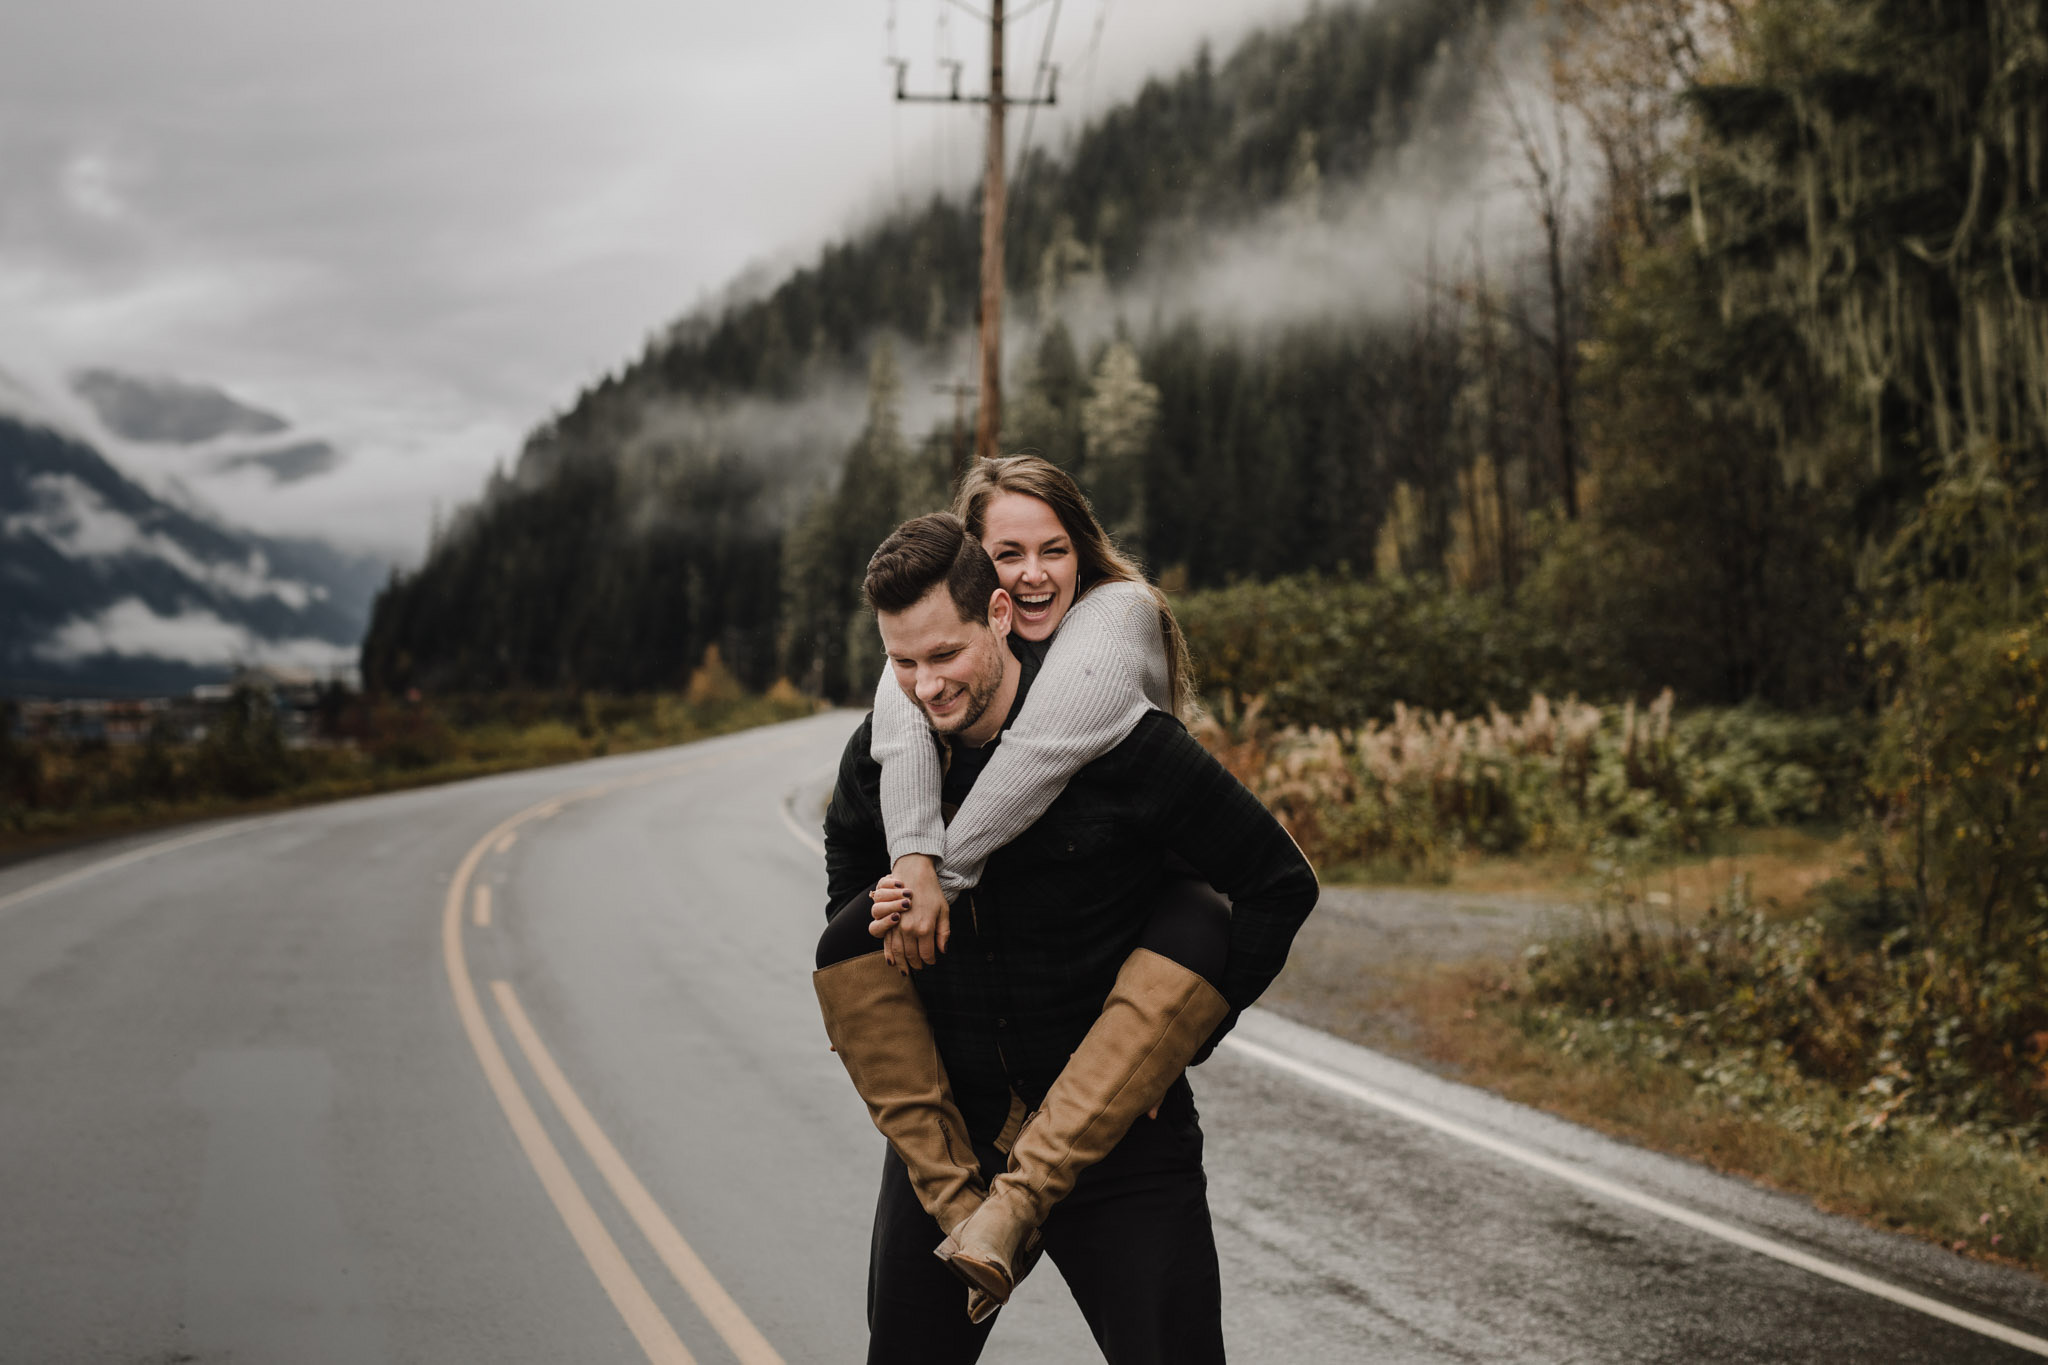 Engagement In the Mountains - goofing around